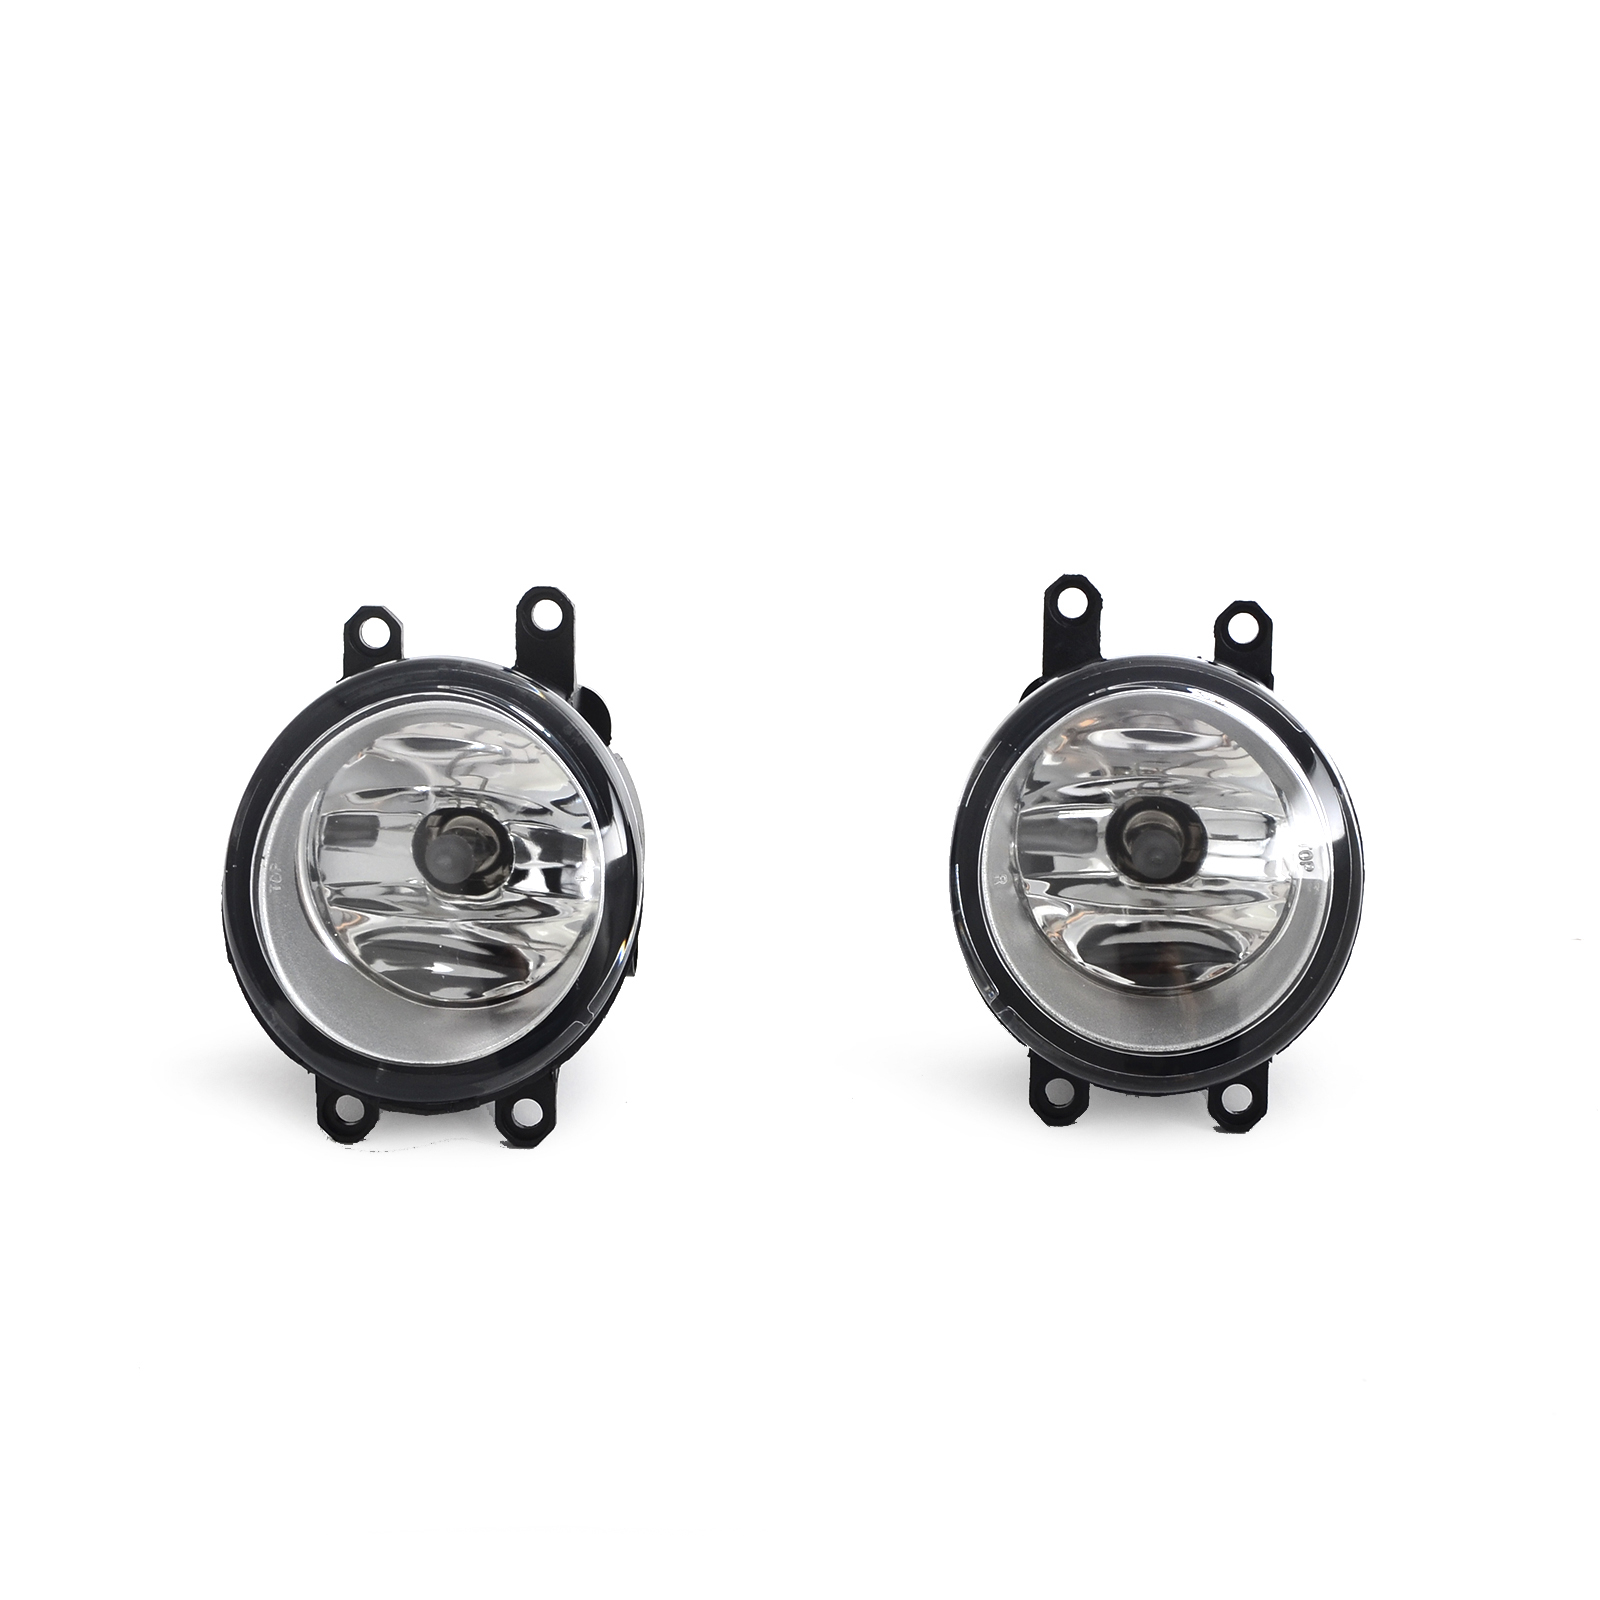 NICECNC Halogen <font><b>Fog</b></font> <font><b>Light</b></font> Lamps/H11 55W Bulbs For <font><b>Lexus</b></font> CT200h ES300h ES350 GS350 460 450h HS250h IS250 IS350 <font><b>LX570</b></font> RX350 RX450h image